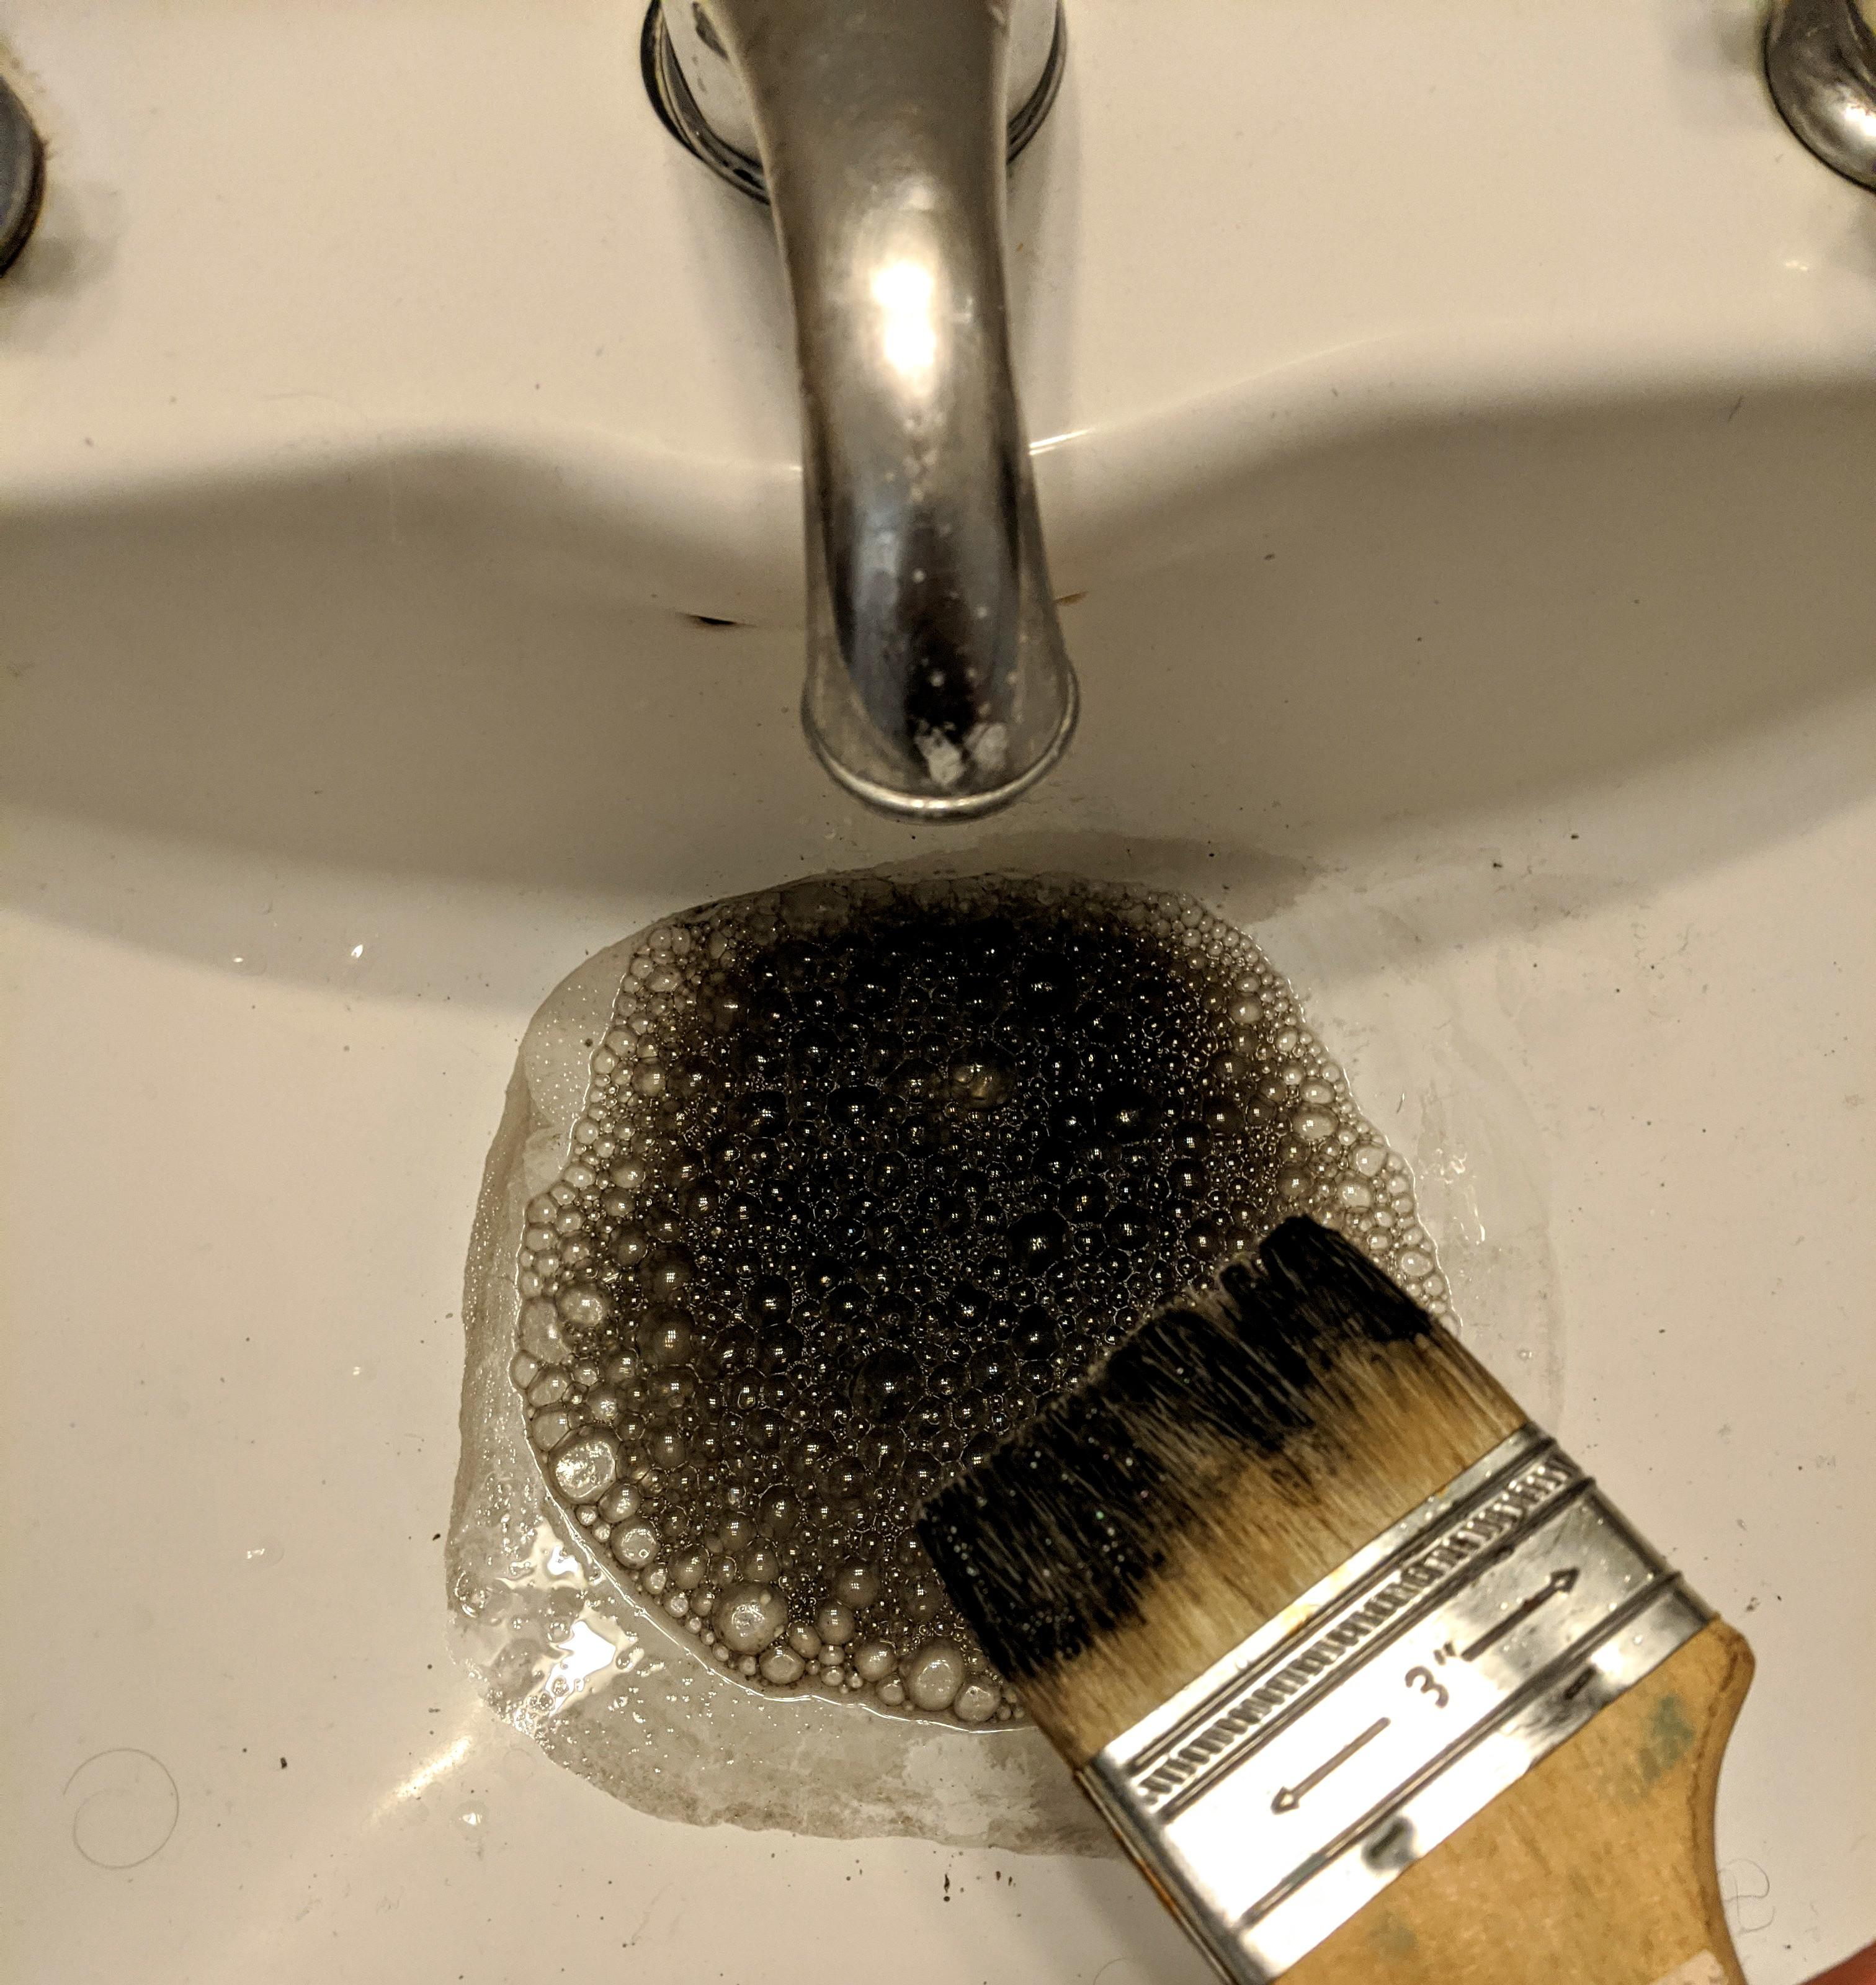 my tap water has turned black because i